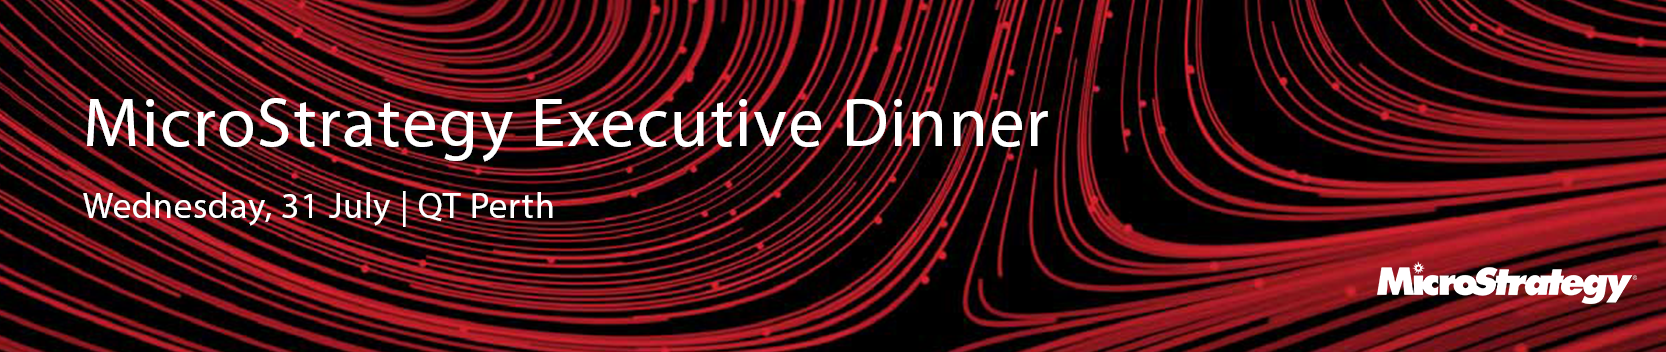 MicroStrategy Executive Dinner - Perth